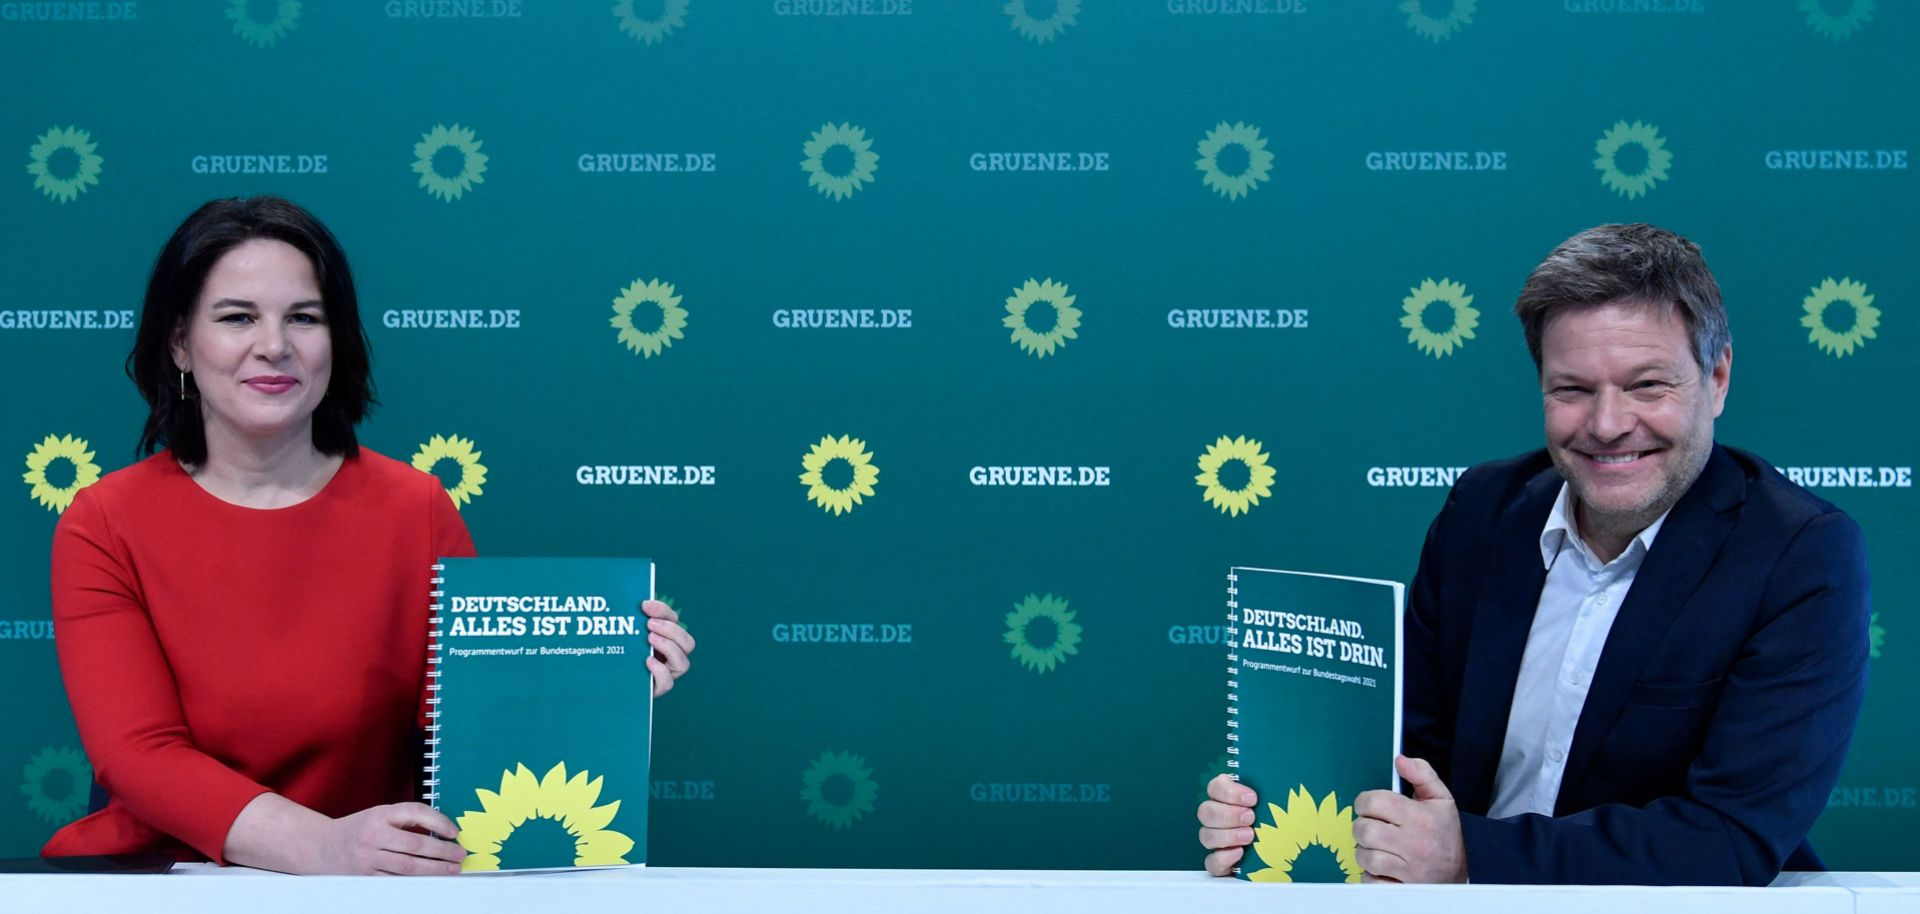 The increasing popularity of pro-environment policies makes the Green party a viable coalition partner for both the center-right CDU and center-left SPD.